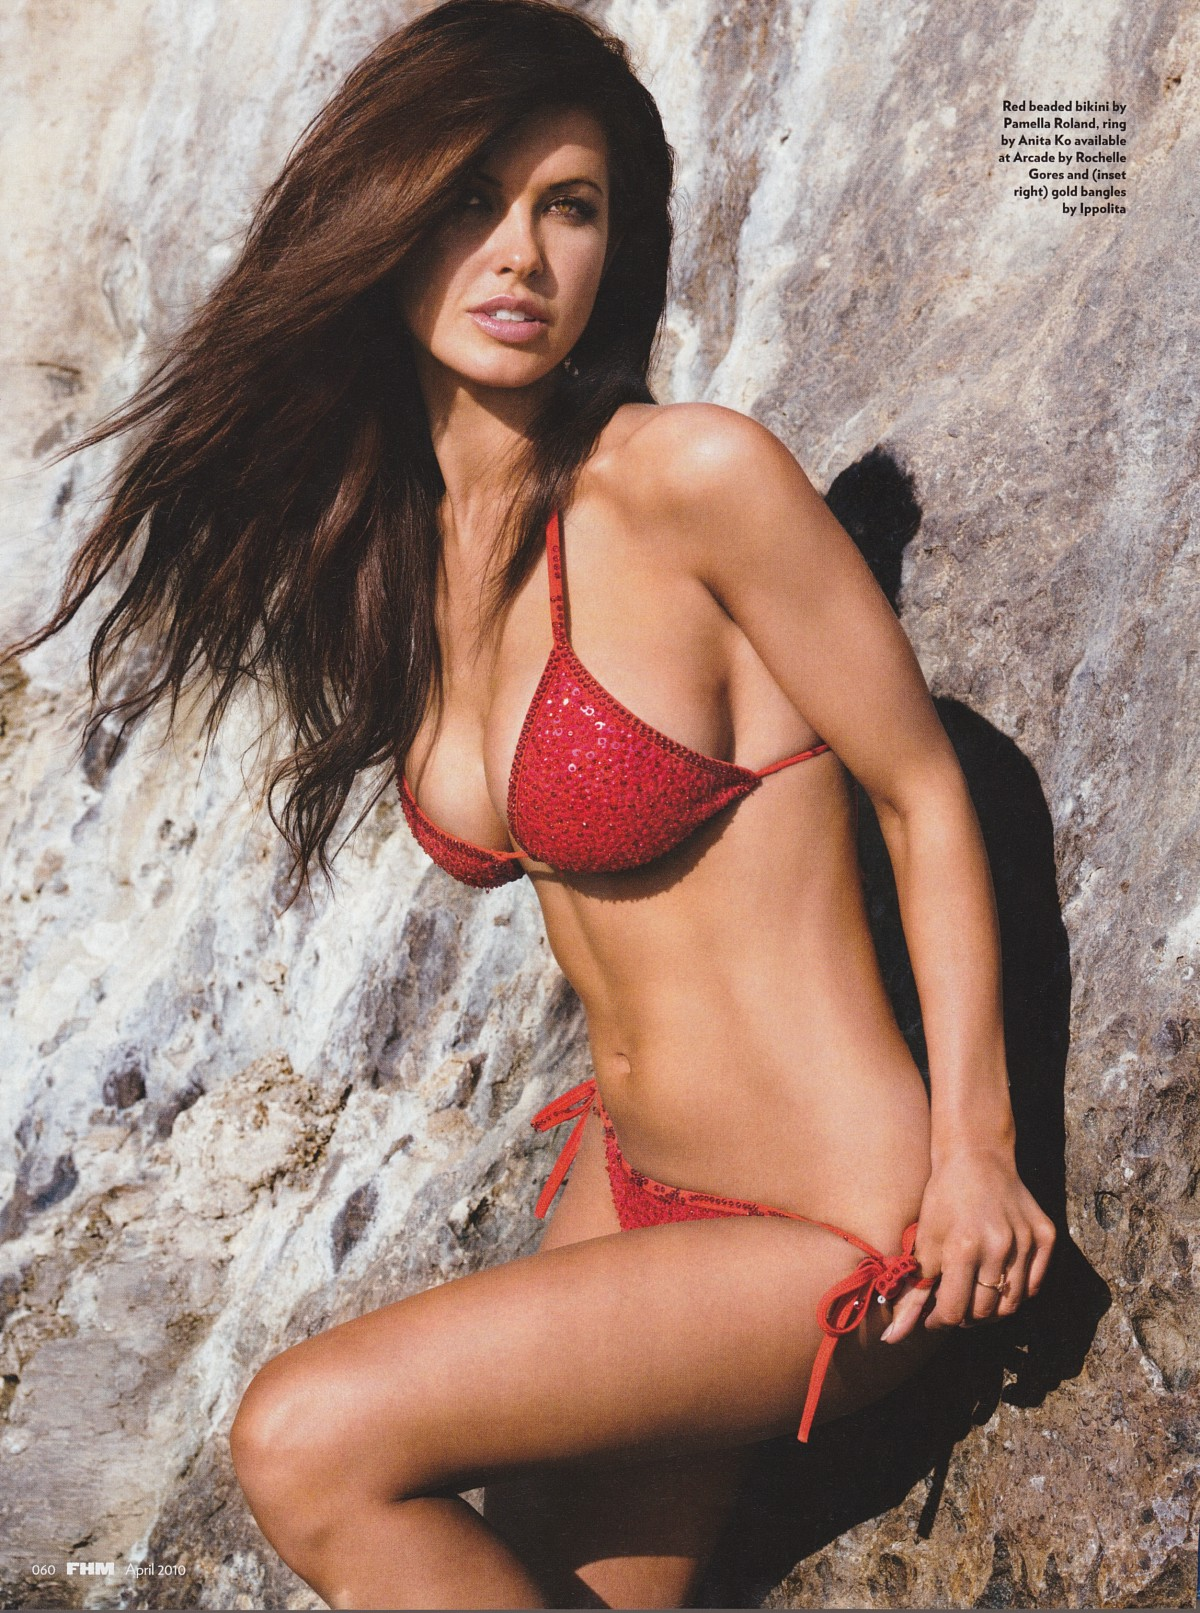 http://11even.files.wordpress.com/2010/03/audrina-patridge-bikini-fhm-03.jpg